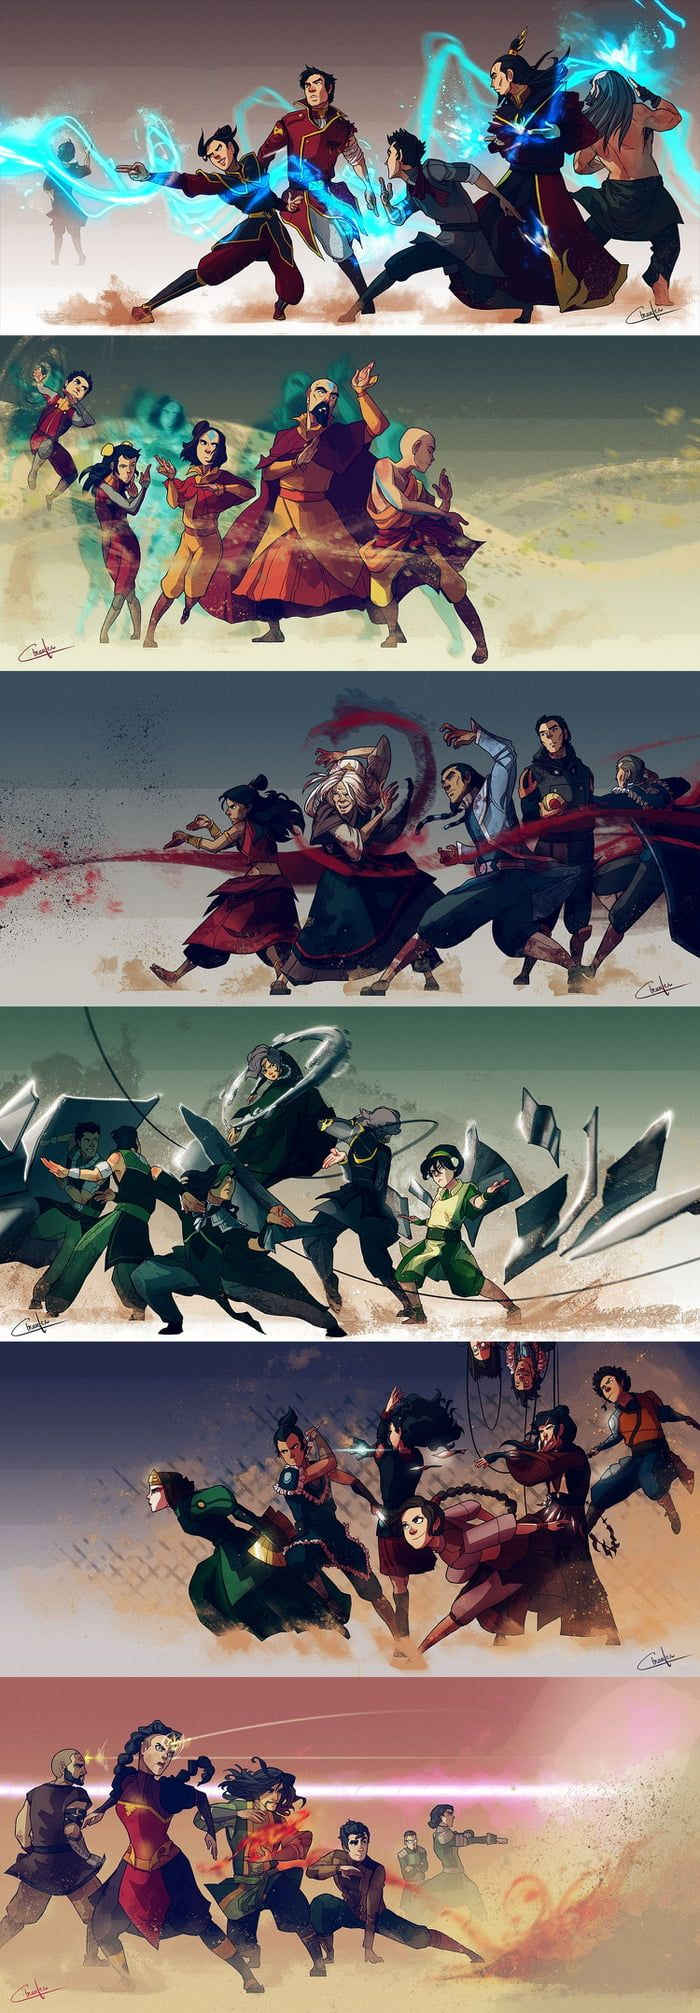 Avatar The last Airbender and The legend of Korra artwork made by Ctreuse109